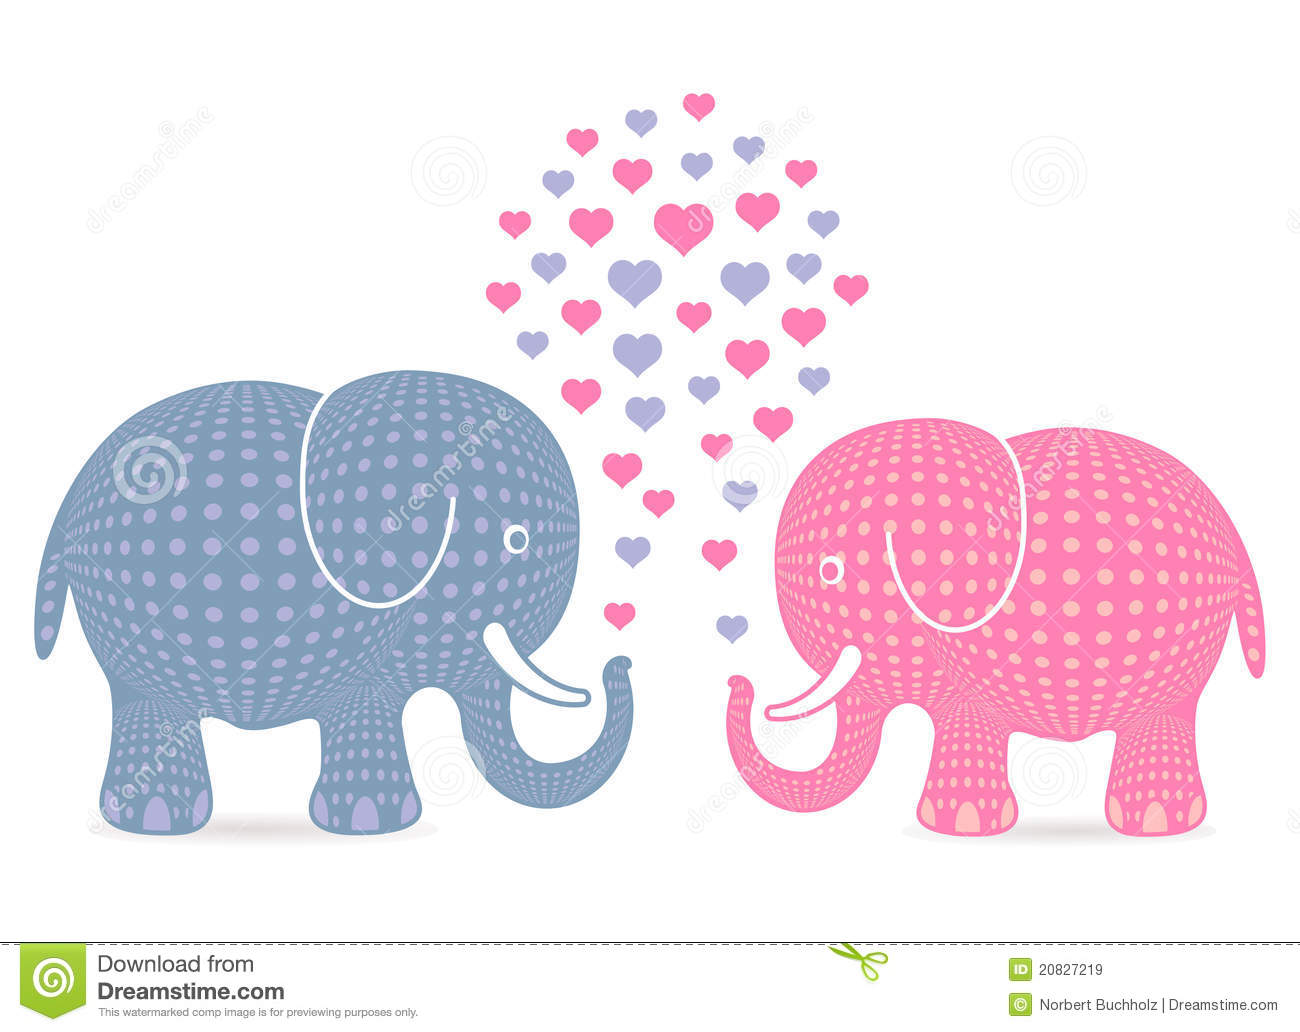 Soltando Amor Imagem De Elefantes: Elephants In Love Royalty Free Stock Images